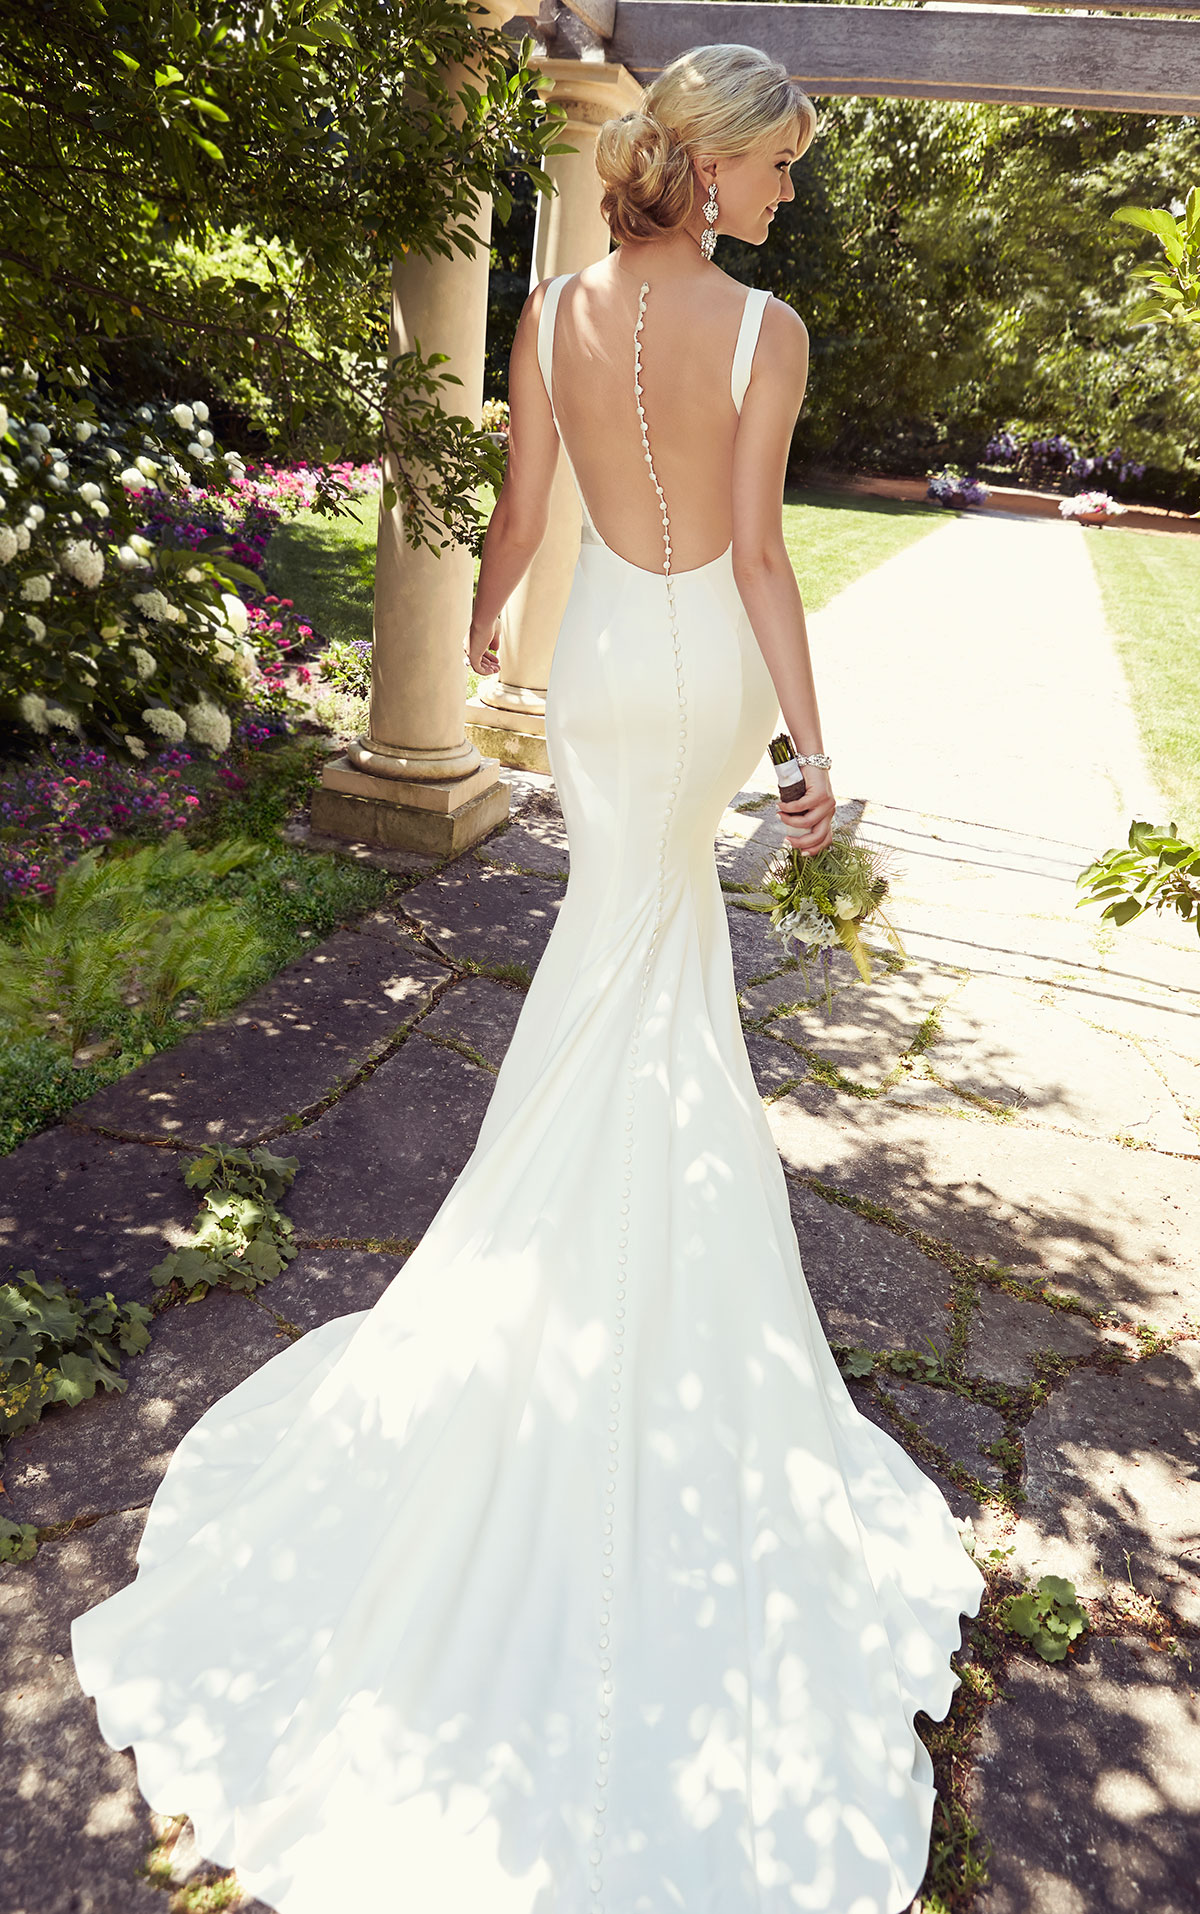 Wedding Backless Dresses Wedding Dress Designers